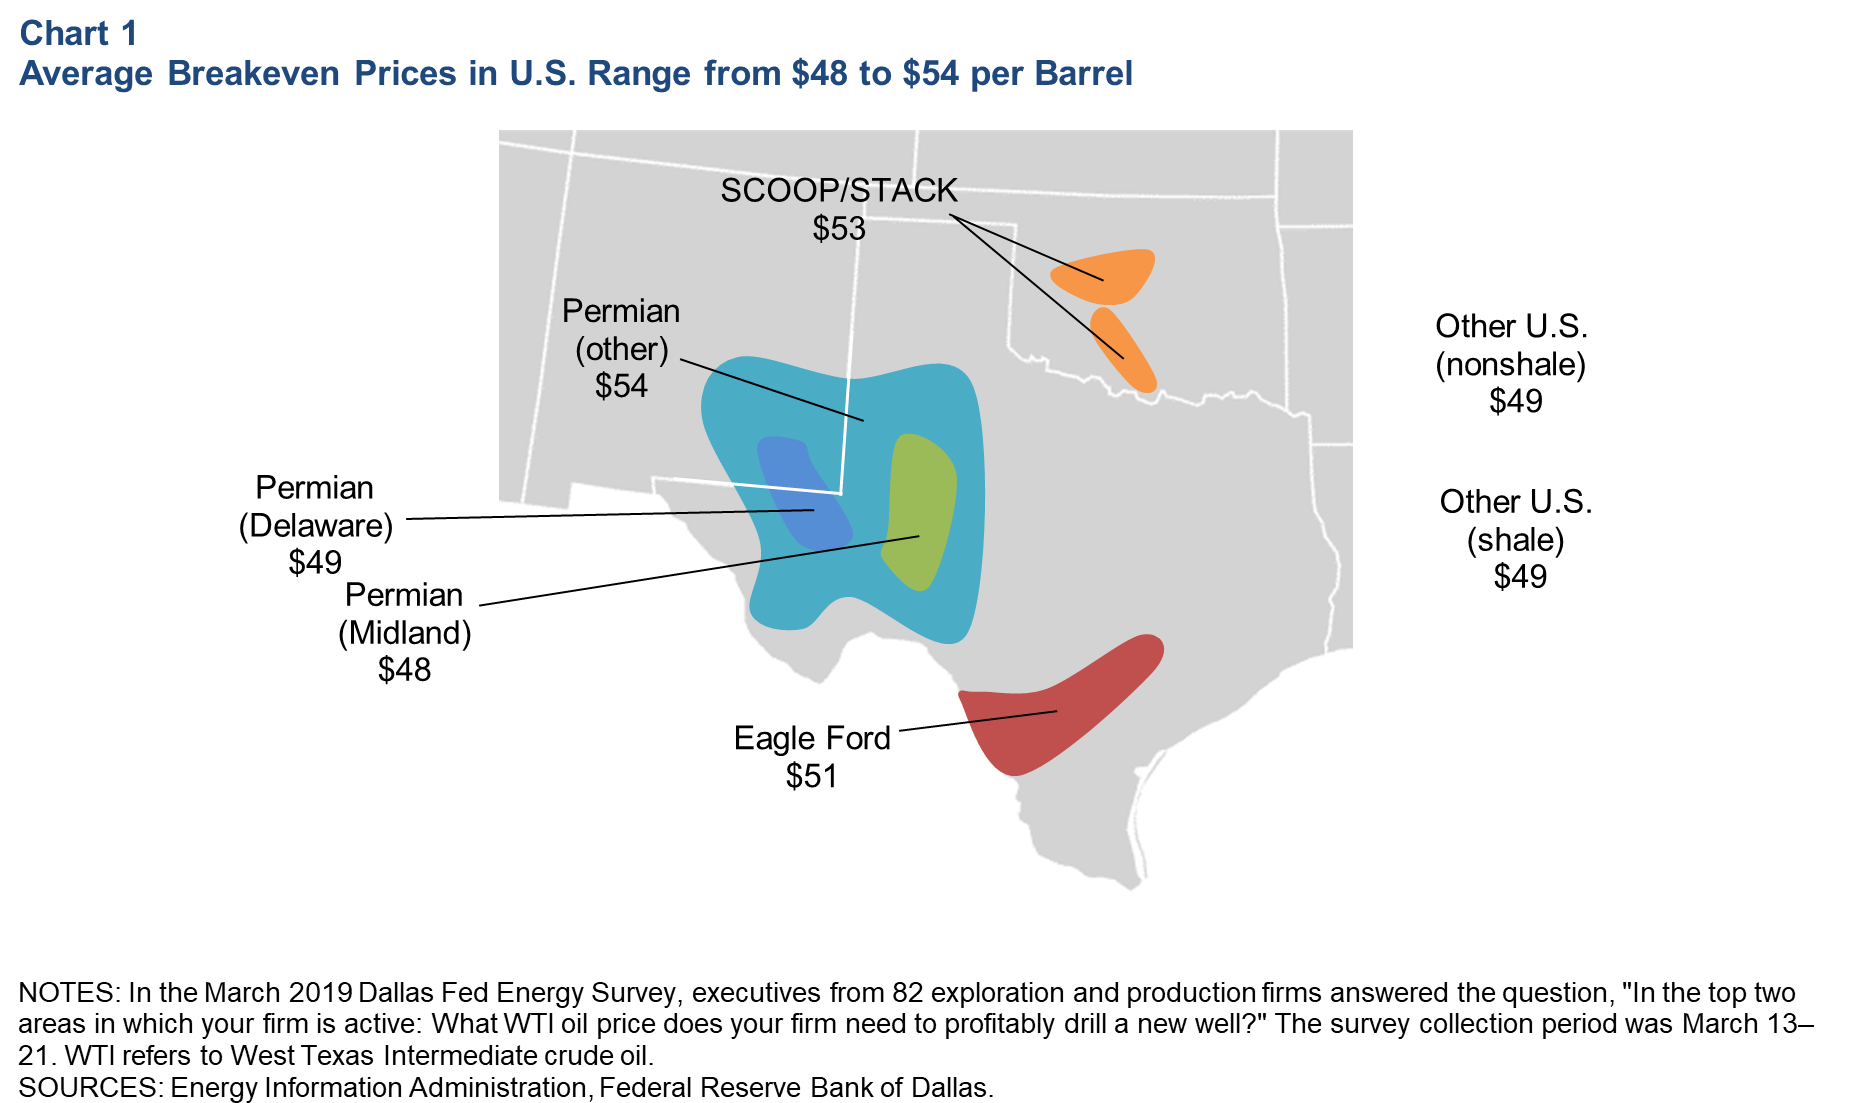 Breakeven Oil Prices Underscore Shale's Impact on the Market